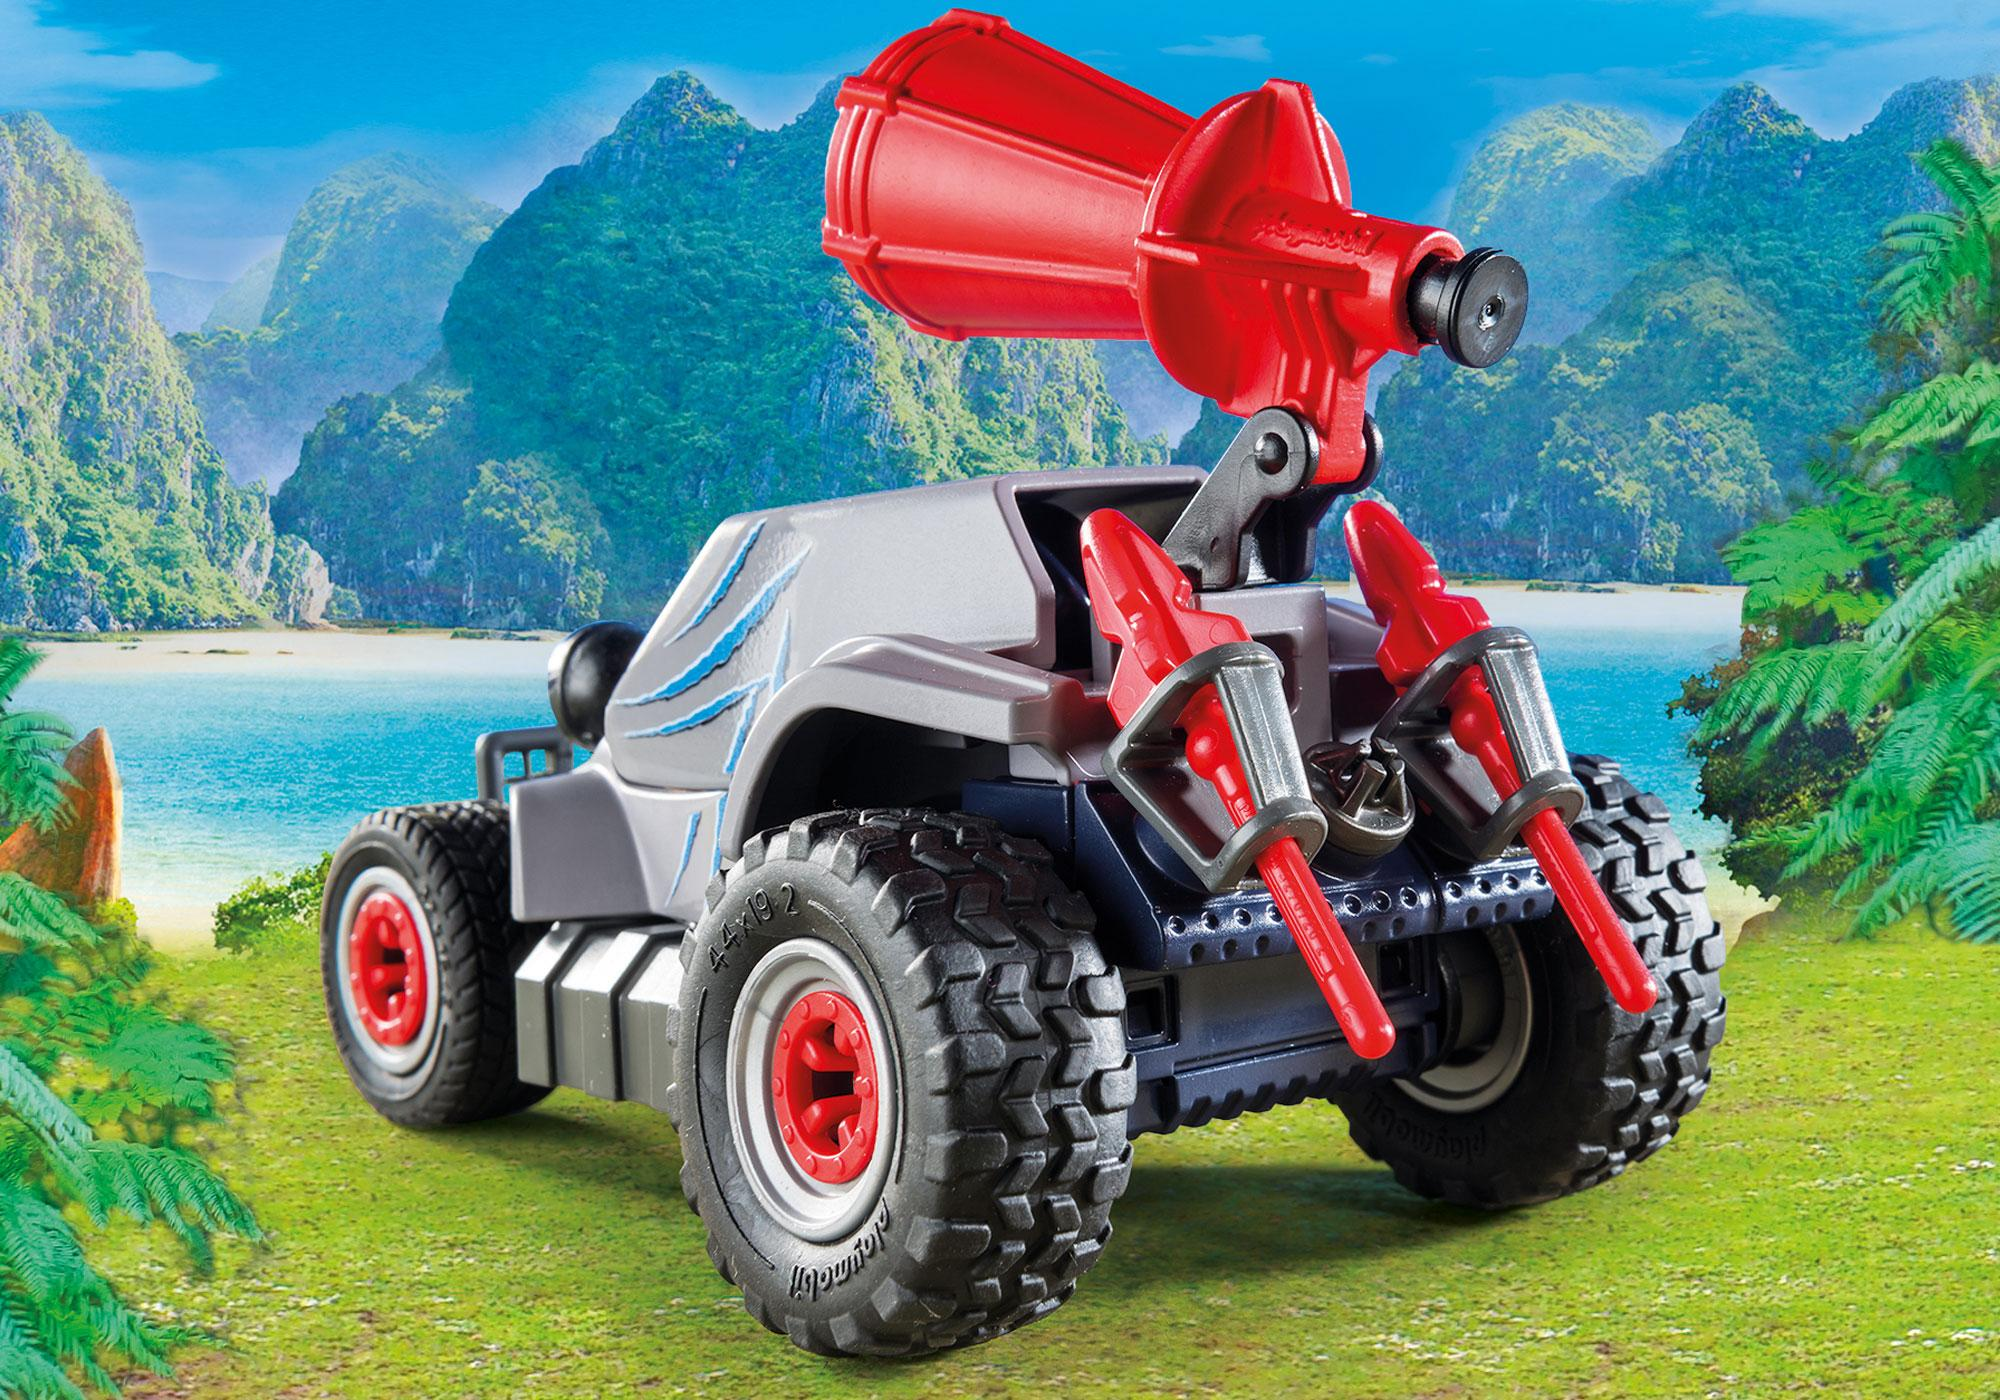 http://media.playmobil.com/i/playmobil/9434_product_extra1/Offroad buggy met dinovangnet